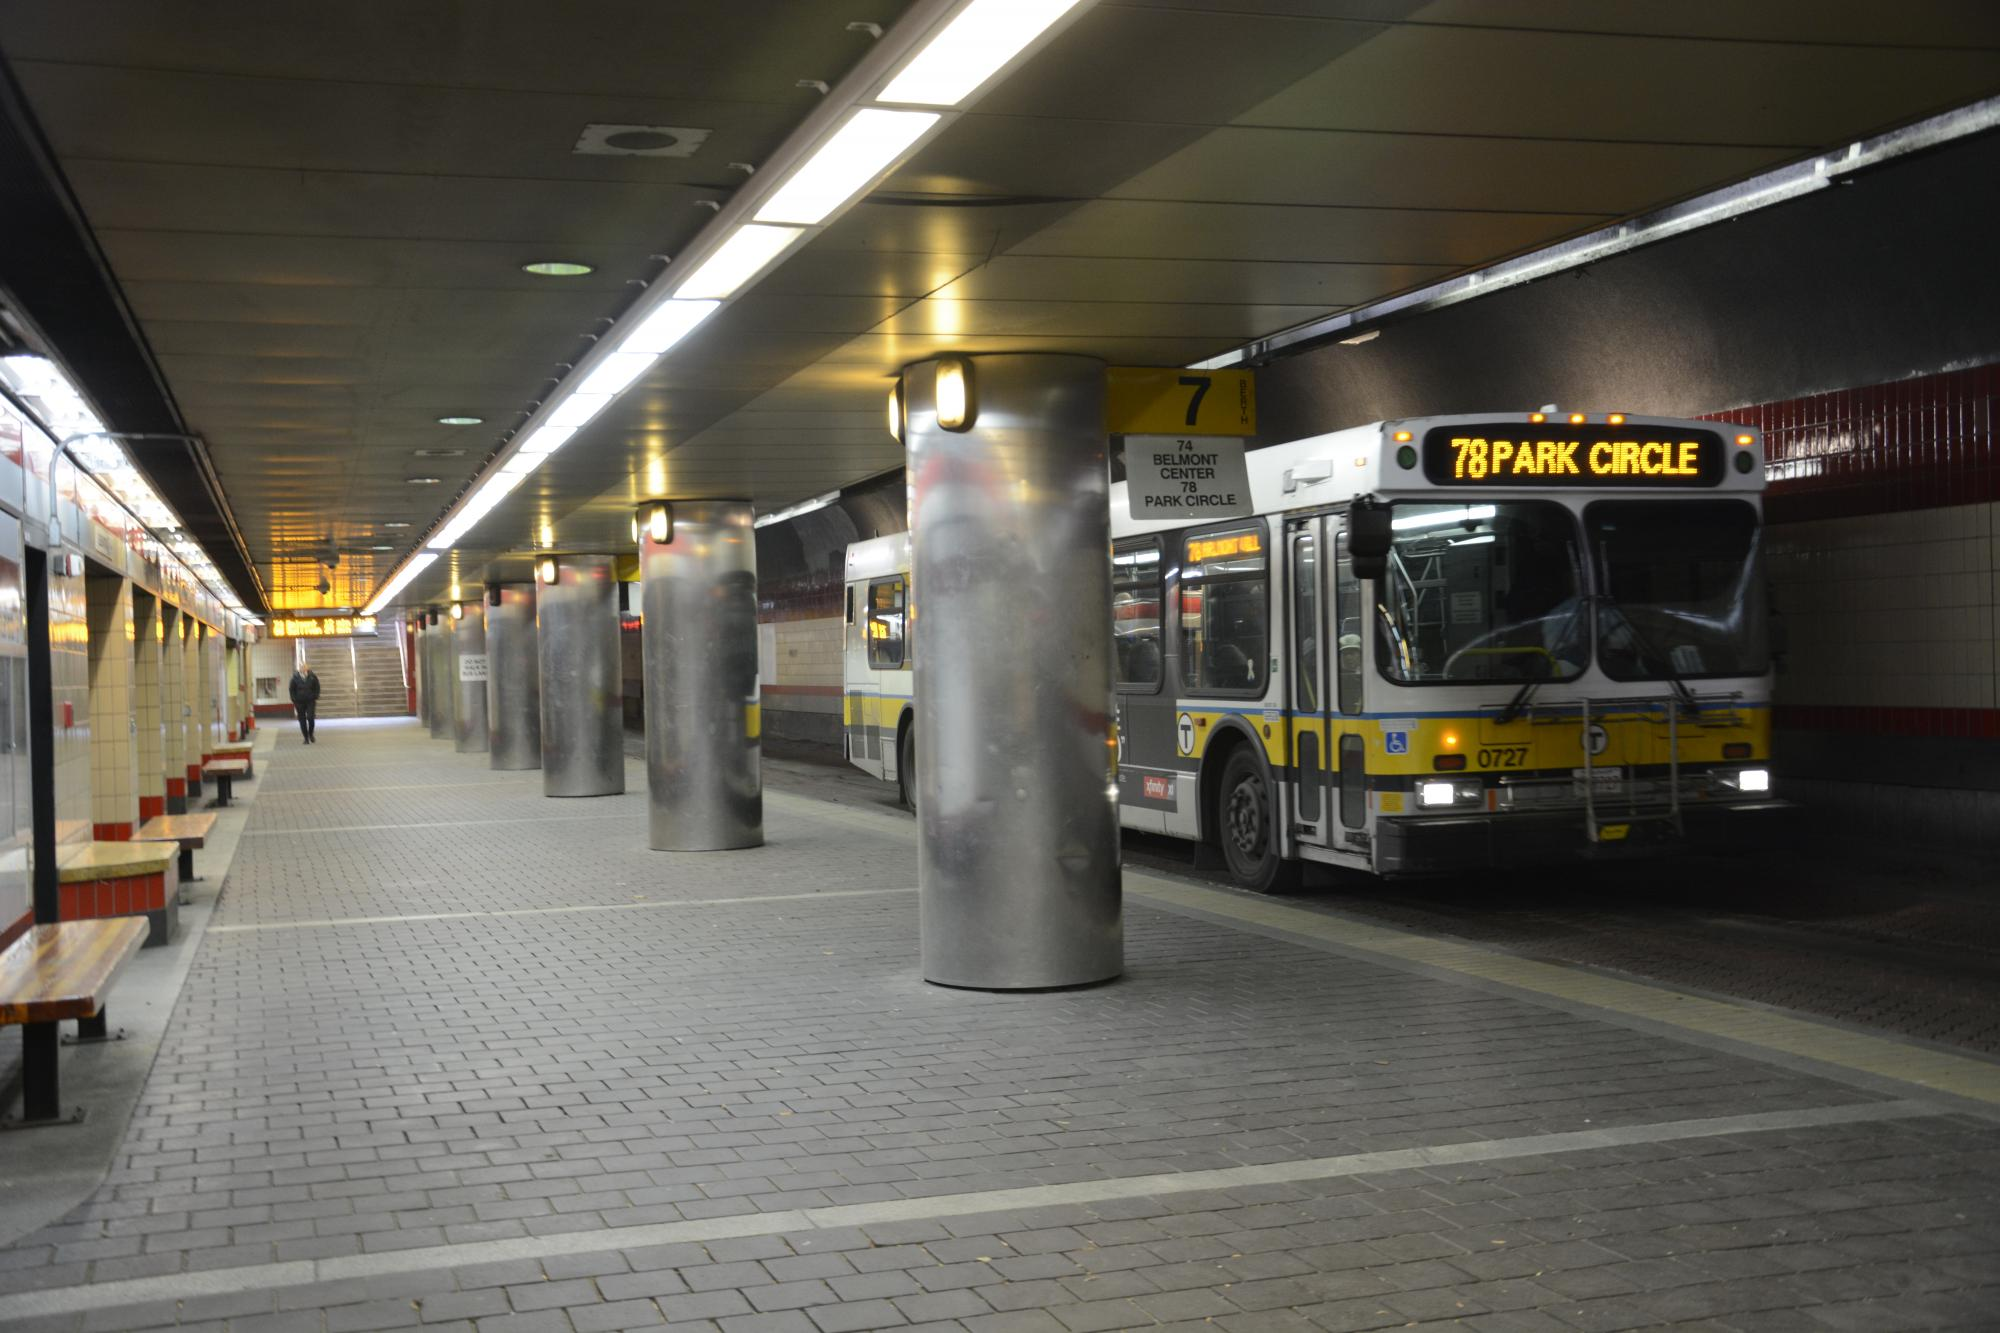 A Route 78 bus pulls into the upper busway at Harvard Station.